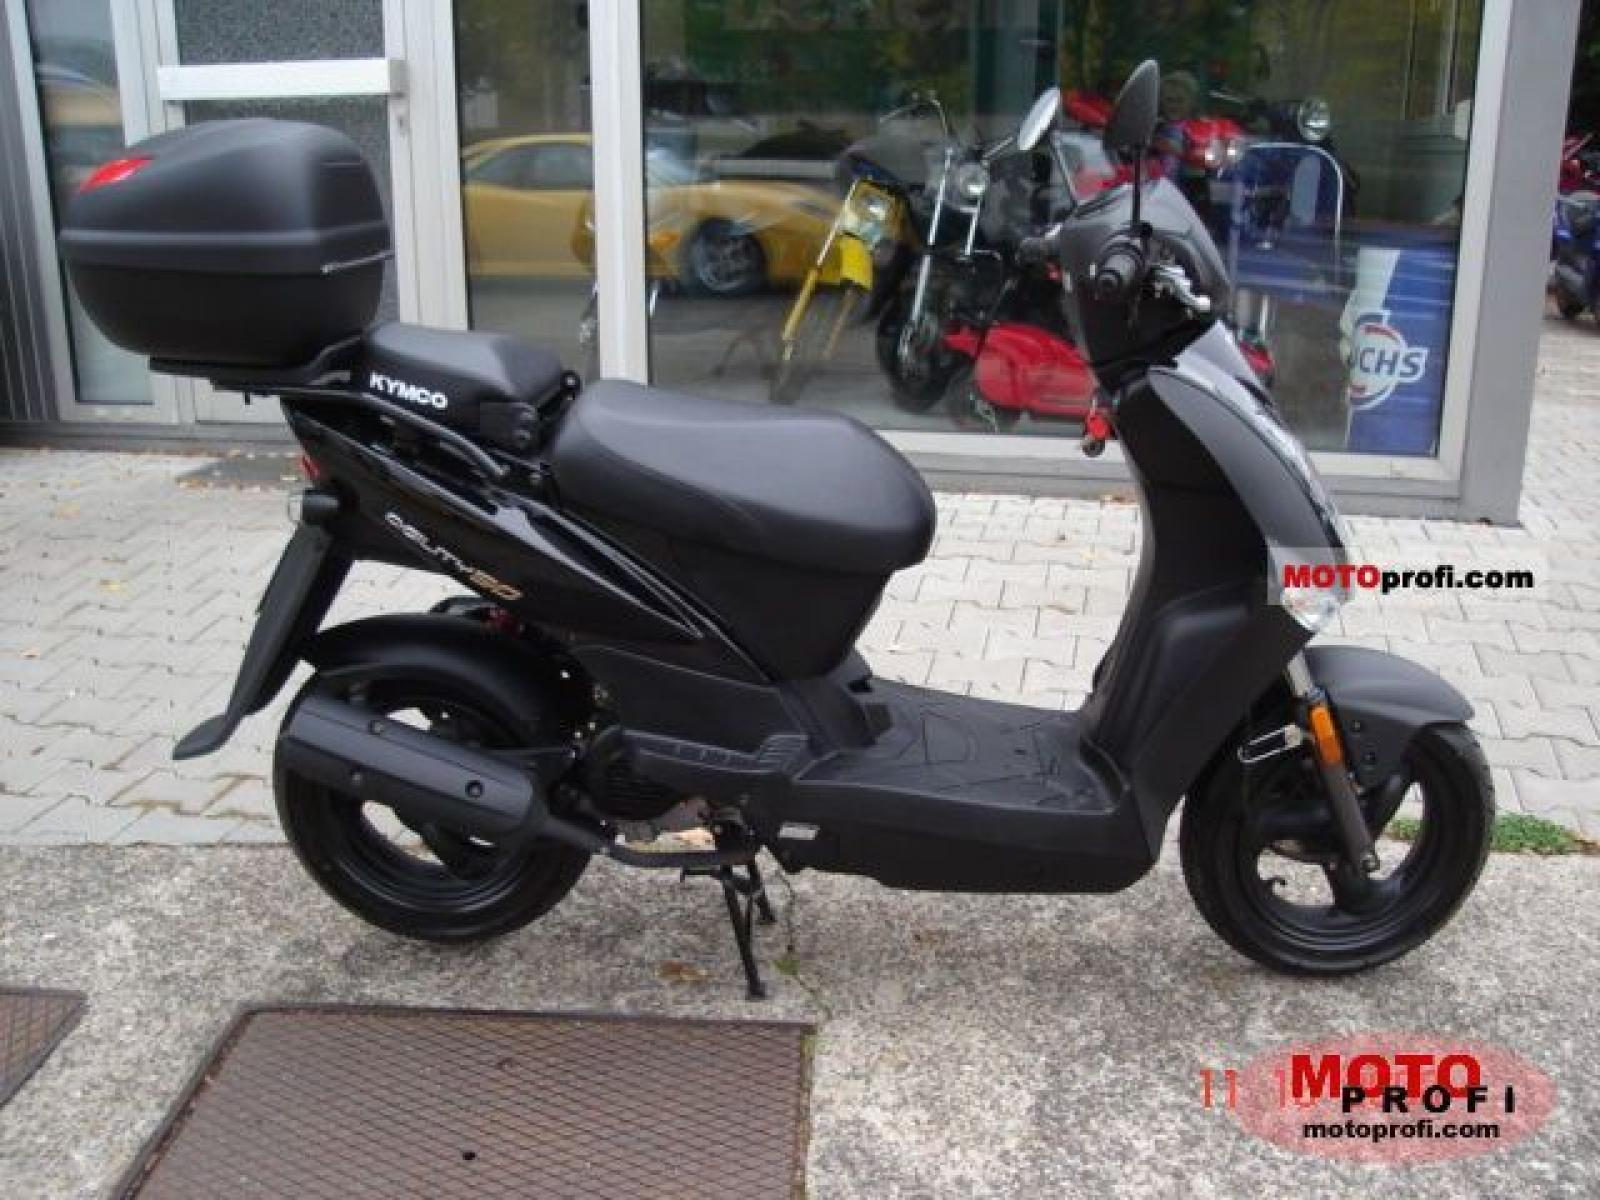 Kymco Agility 50 2006 images #101912